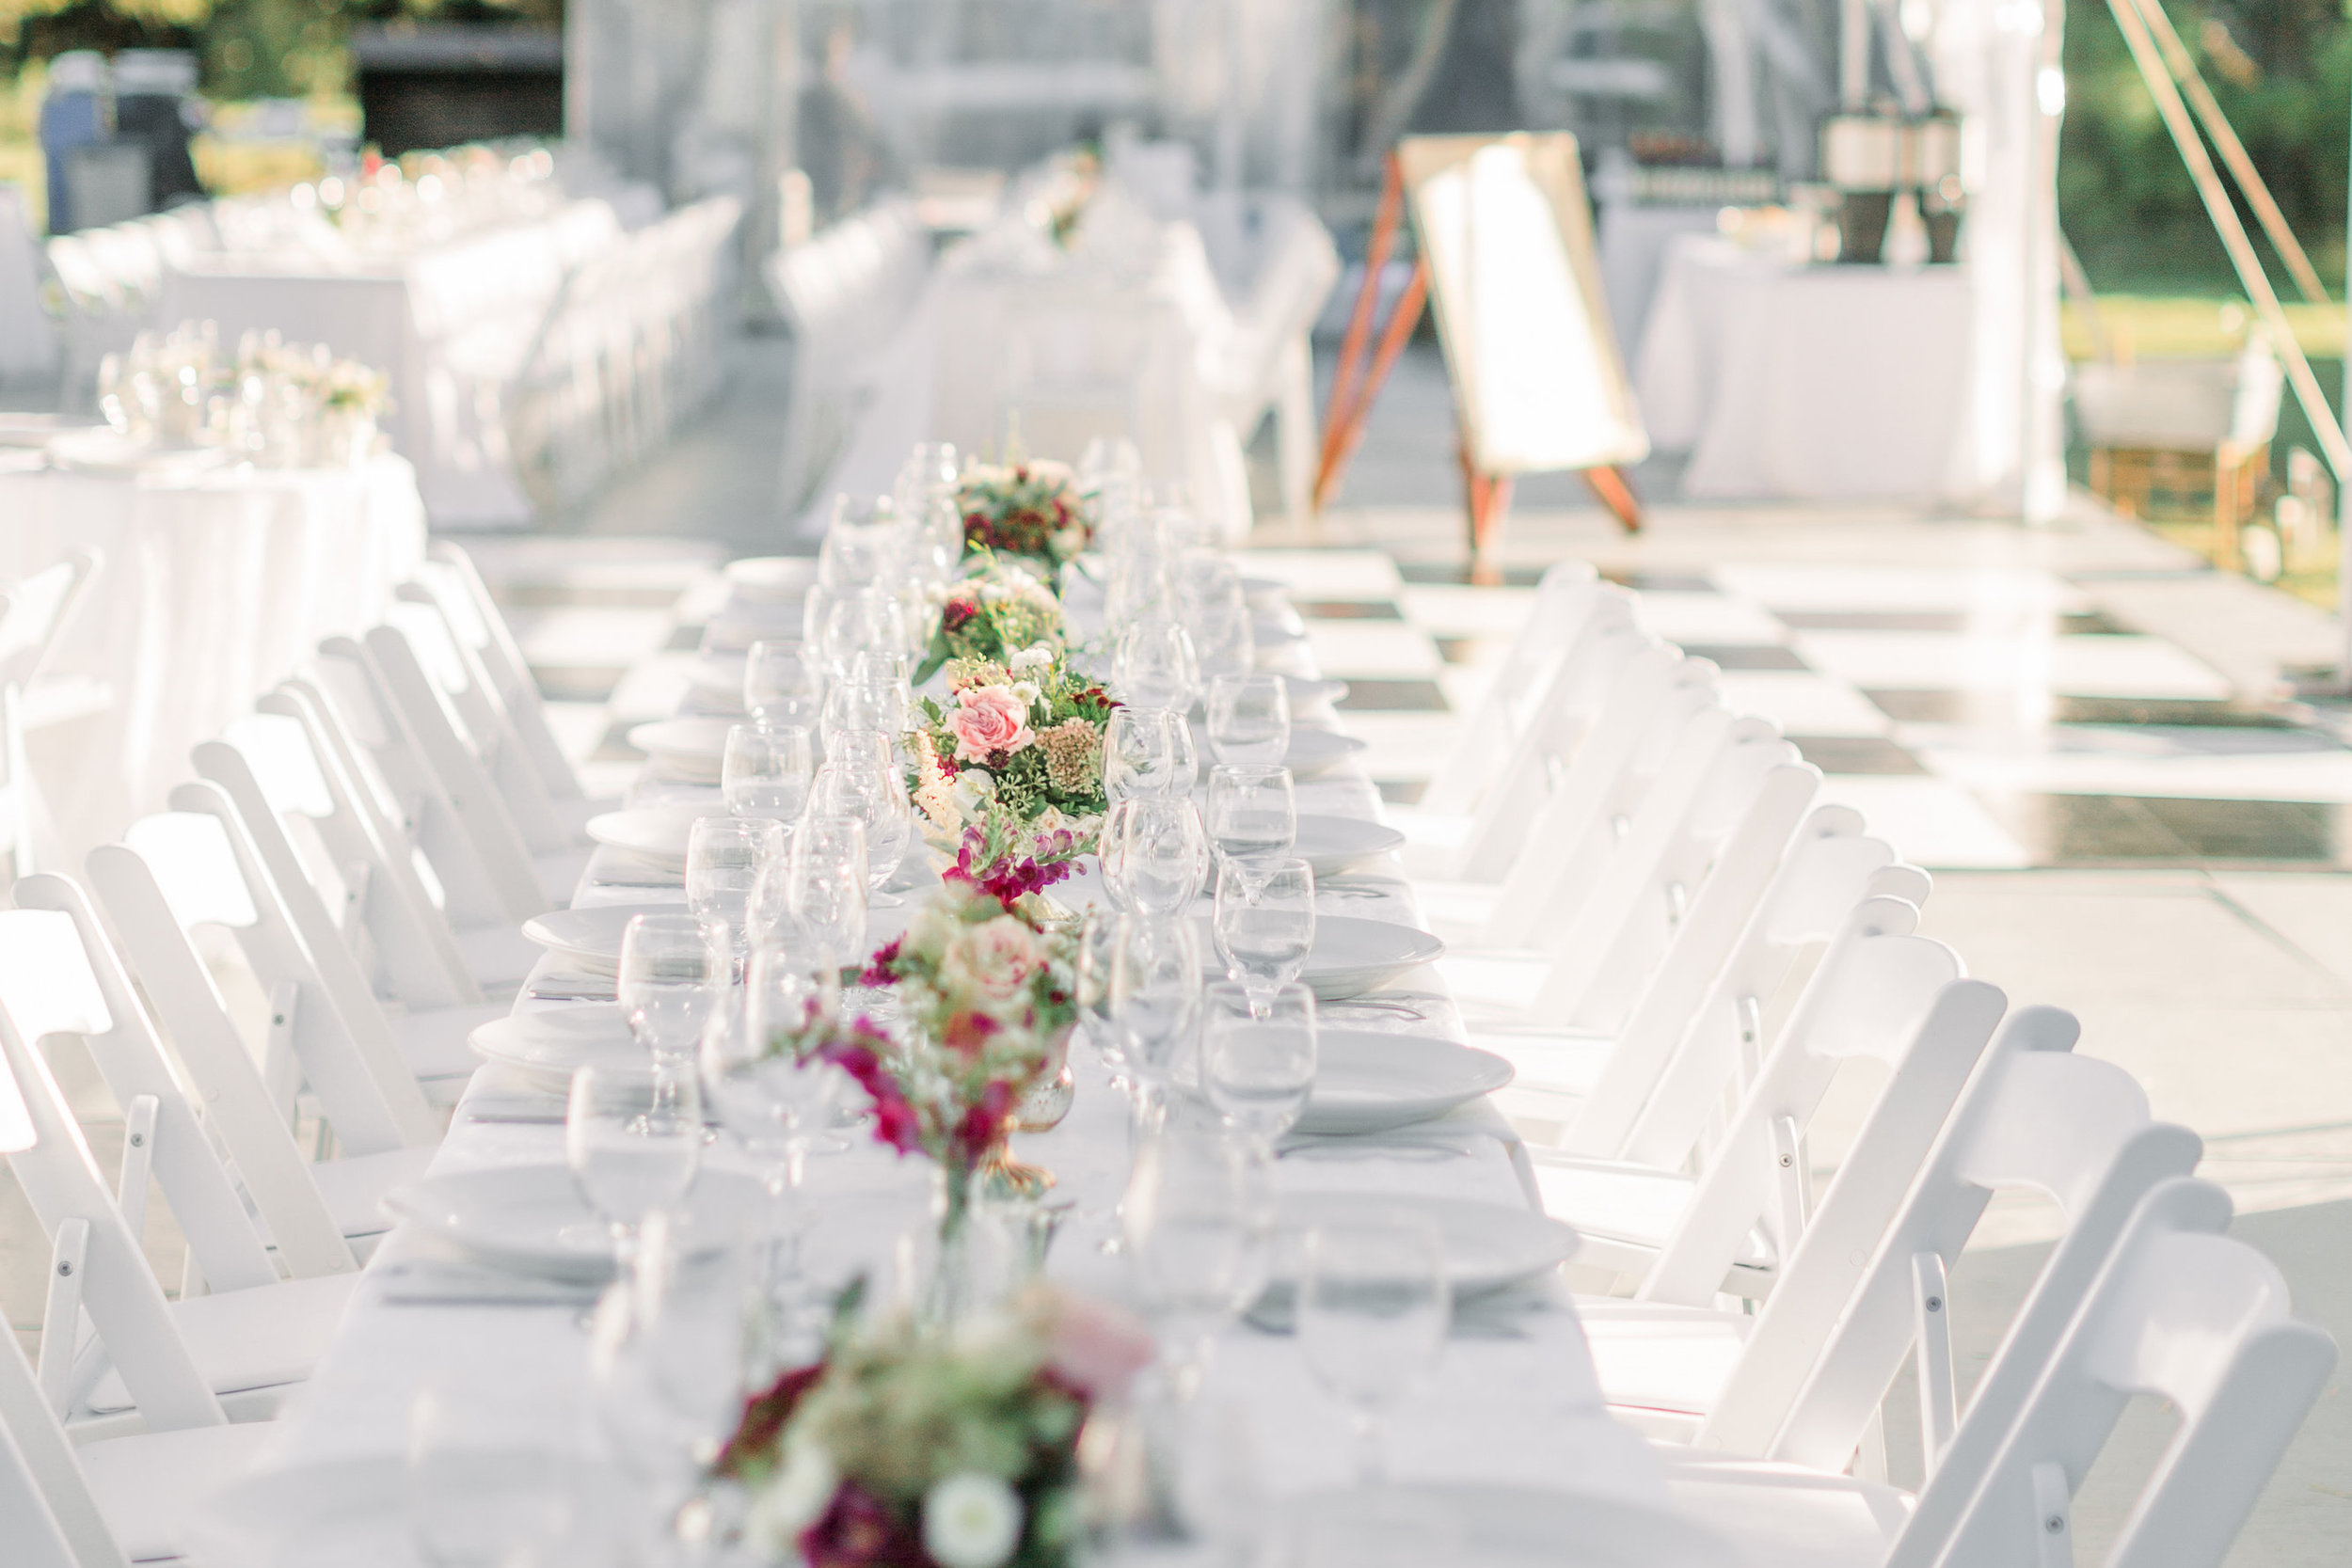 Meet & Learn From Experienced Wedding Professionals - Connect with these trusted premier wedding professionals who will be at the Wed & Wonder event! Each one will also participate in the panel presentation at 5:30pm.